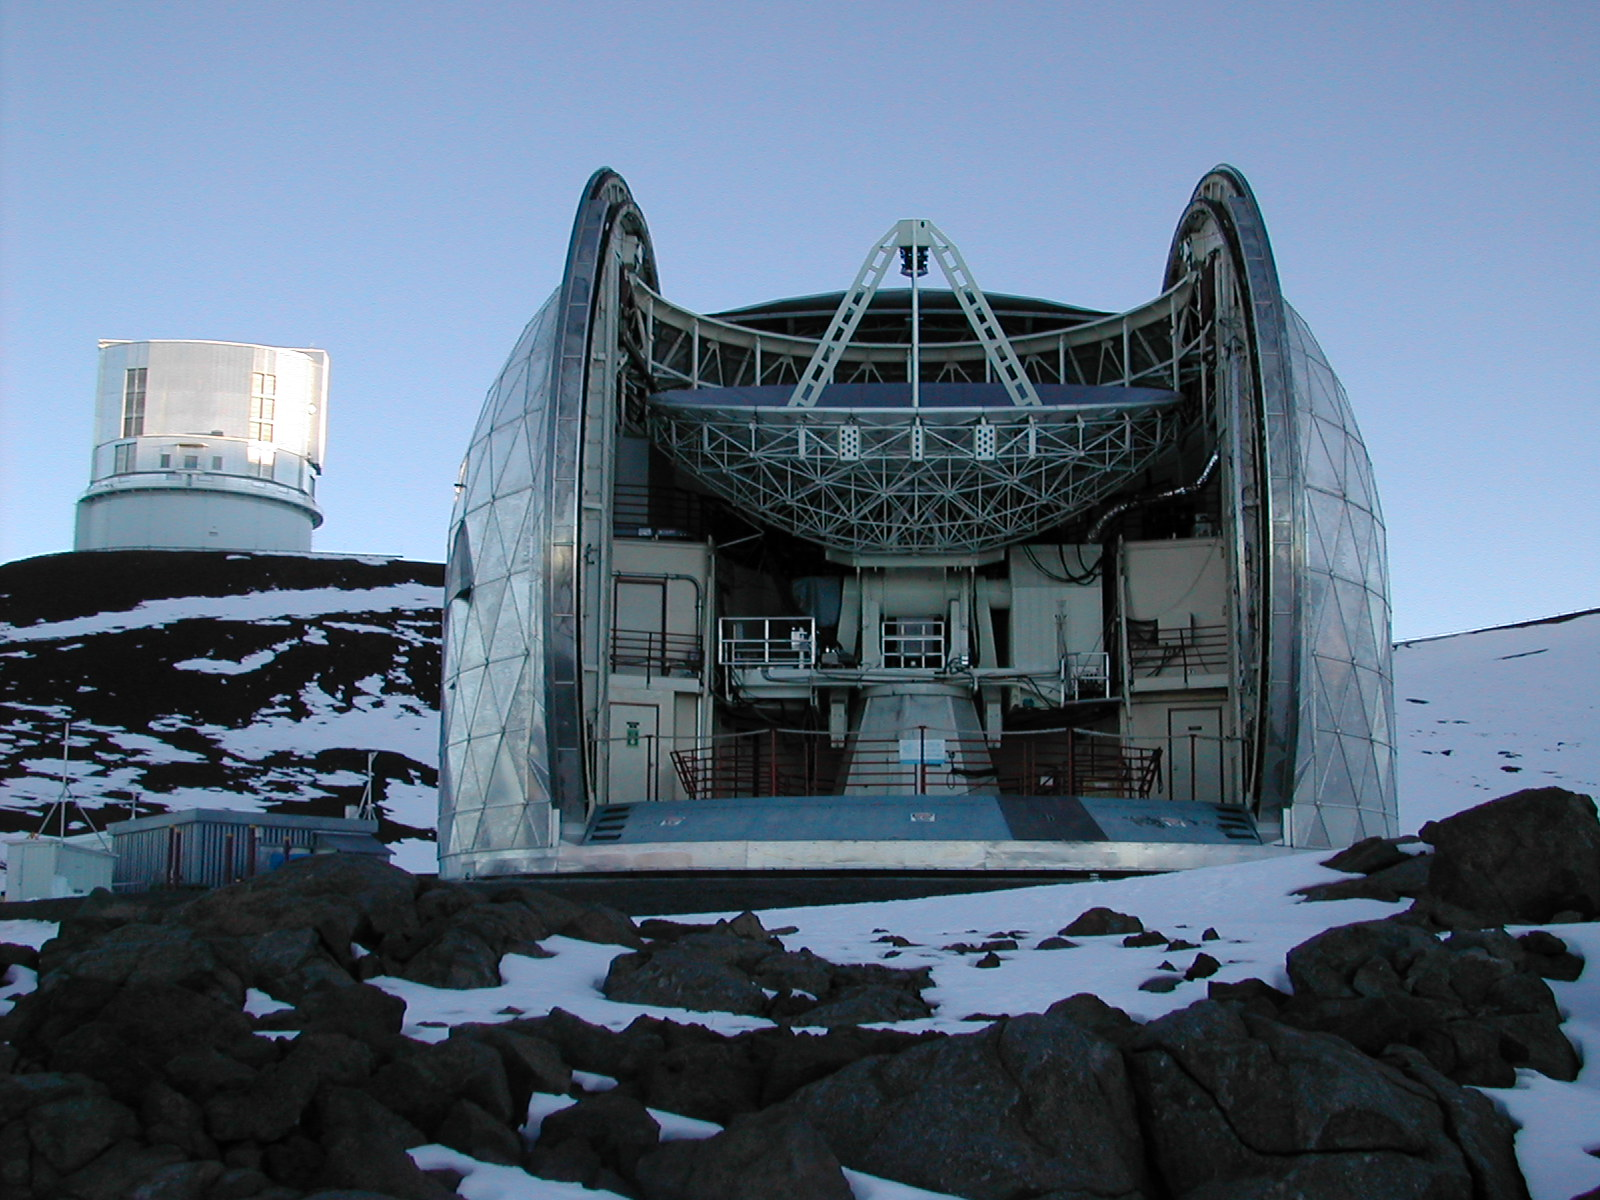 Public input sought on decommissioning Caltech's telescope on Maunakea